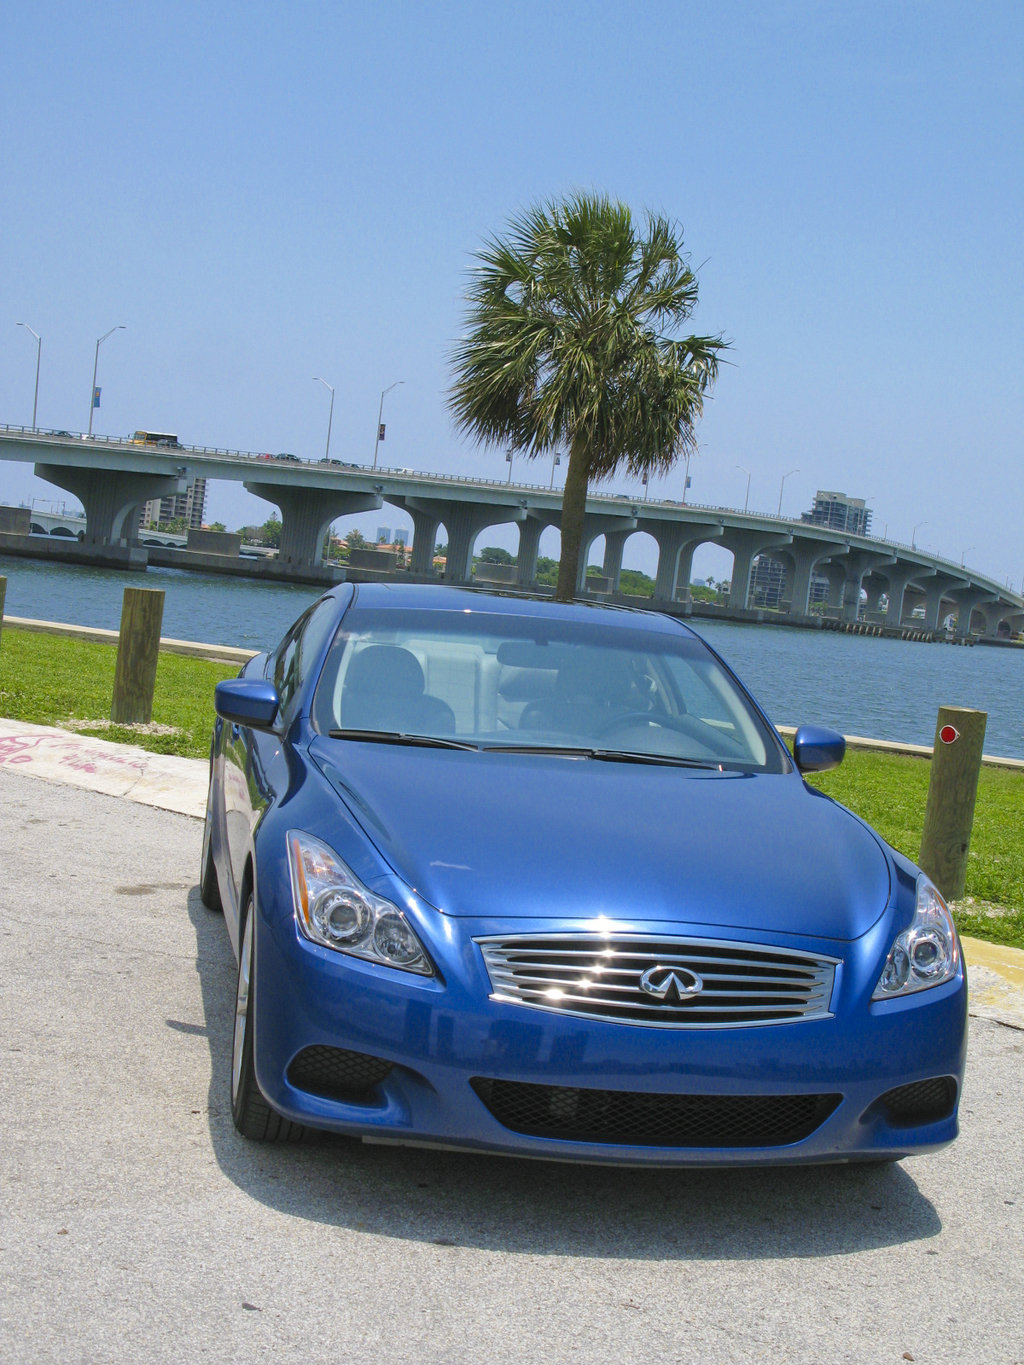 2009 infiniti g37 s coupe picture 307983 car review. Black Bedroom Furniture Sets. Home Design Ideas